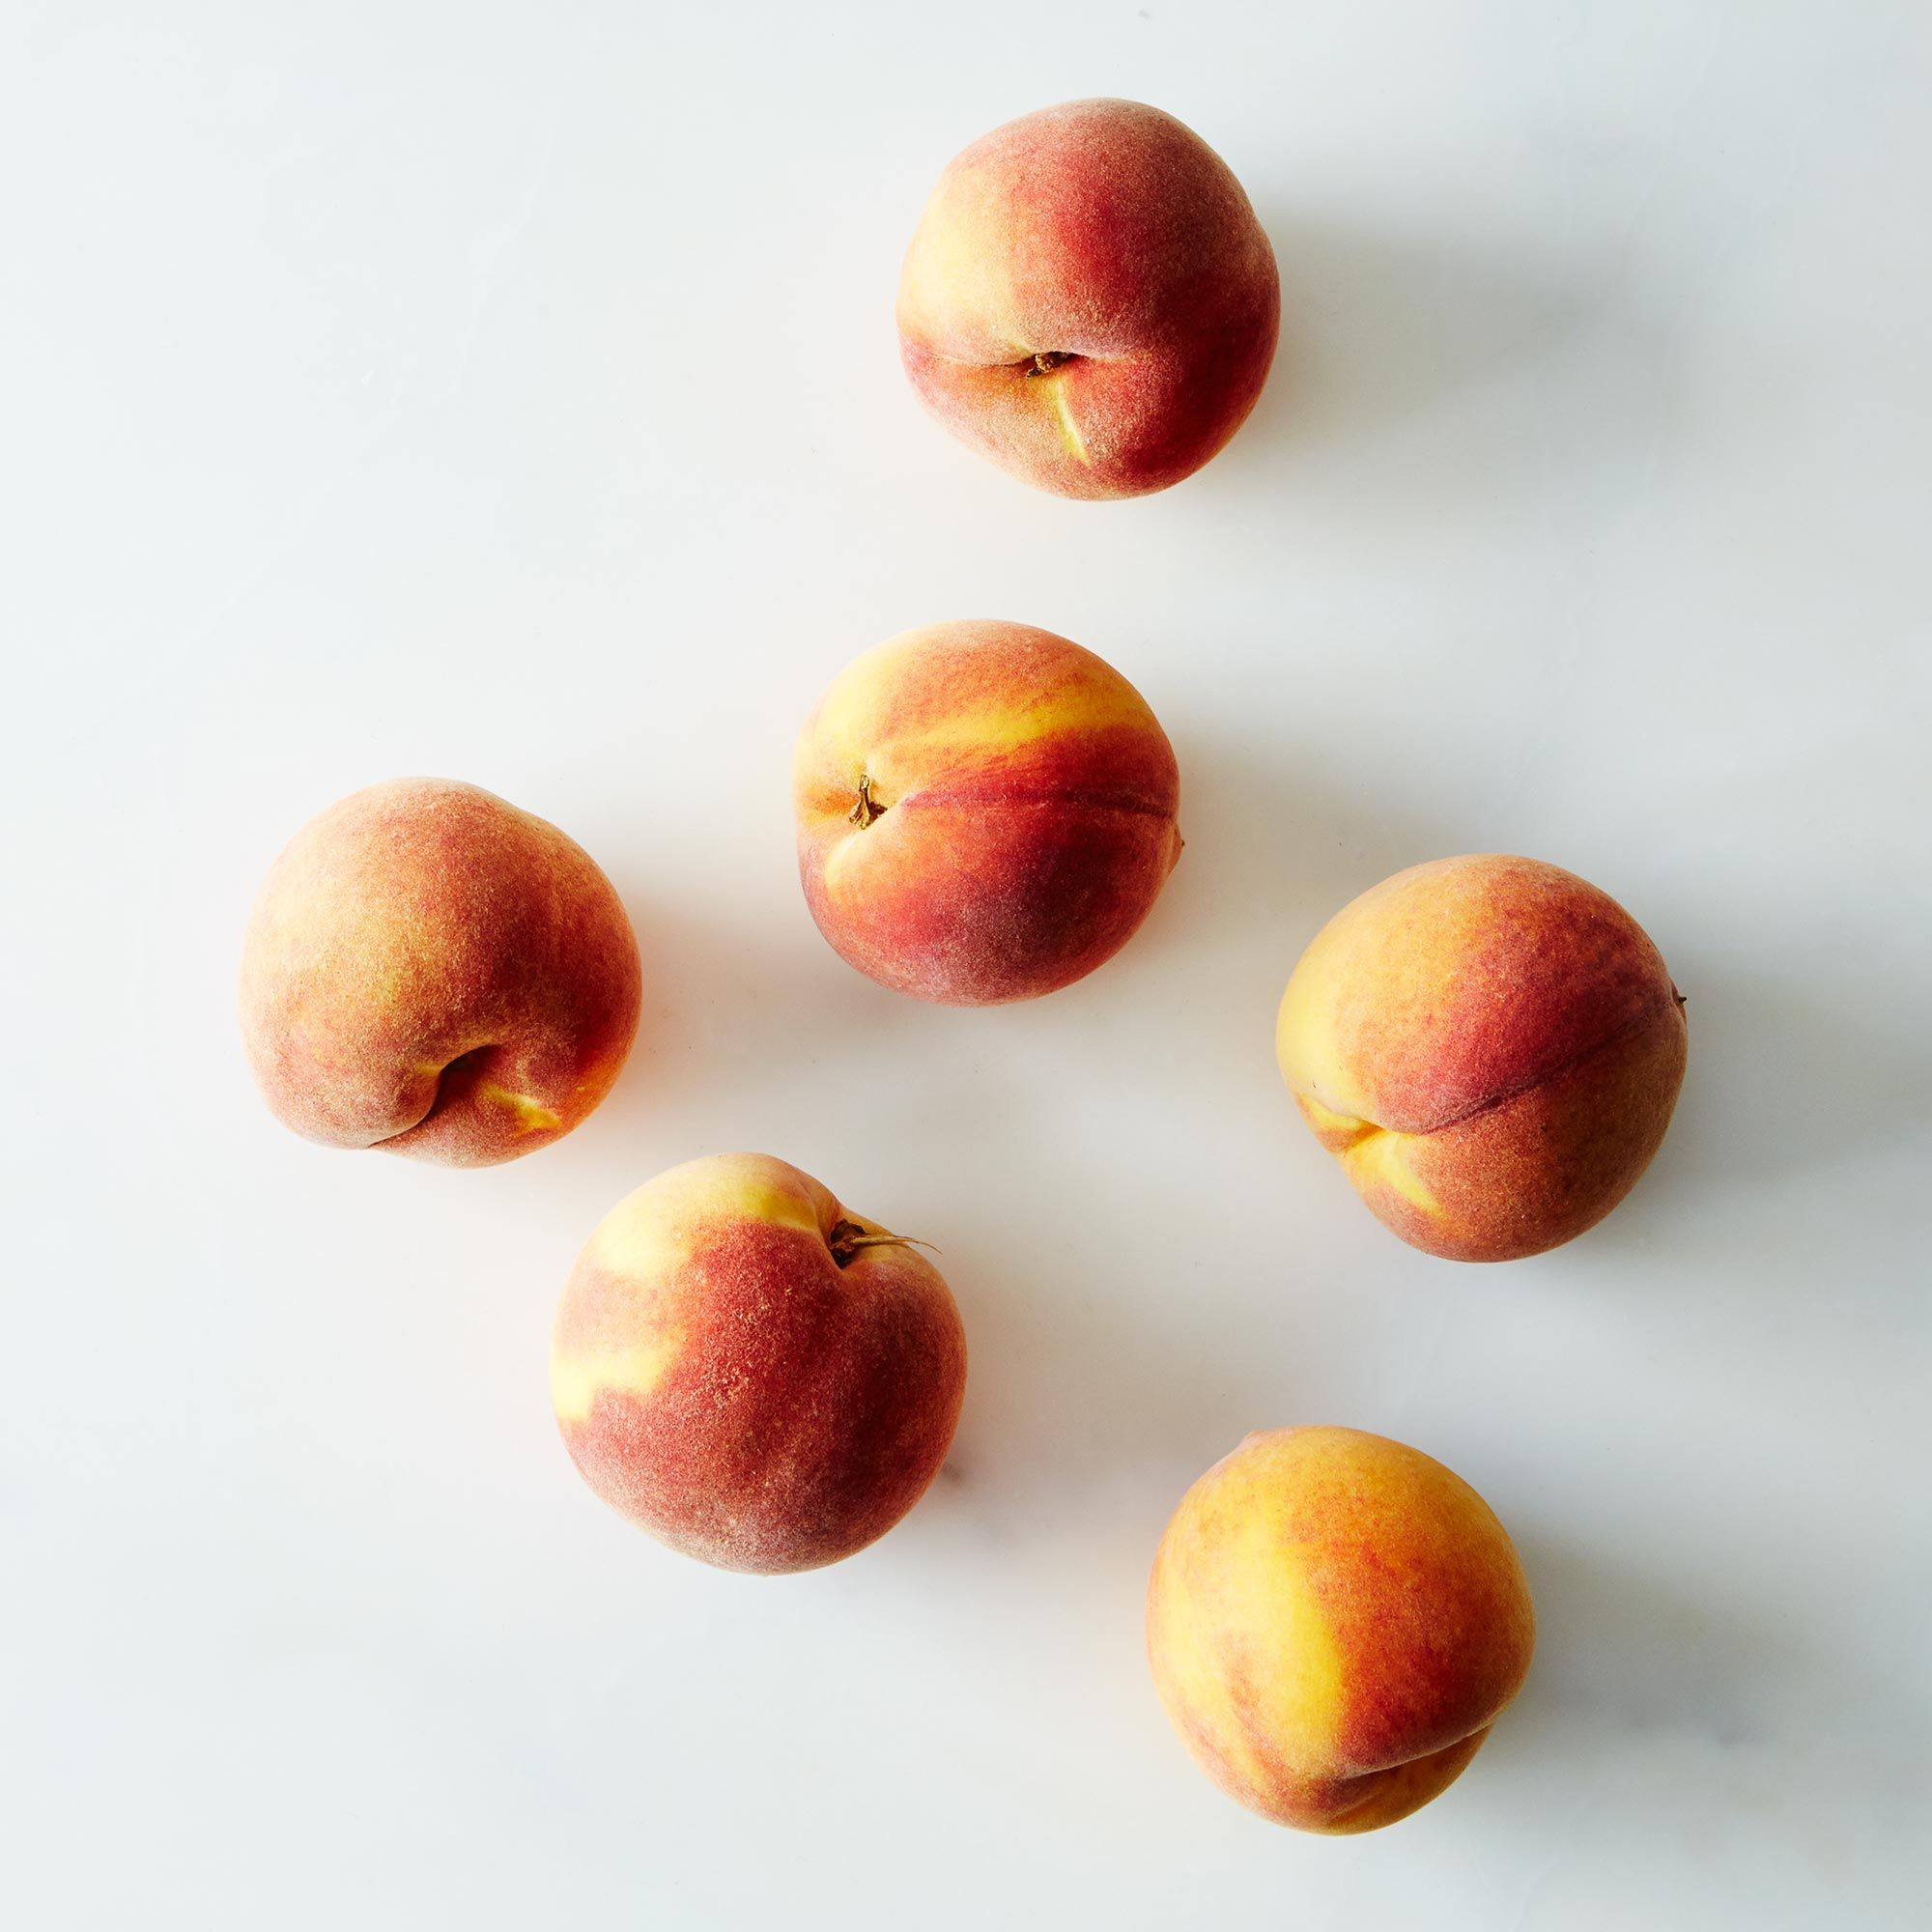 42b9c39e a0f6 11e5 a190 0ef7535729df  2014 0625 frog hollow farm organic peaches 3lb 022